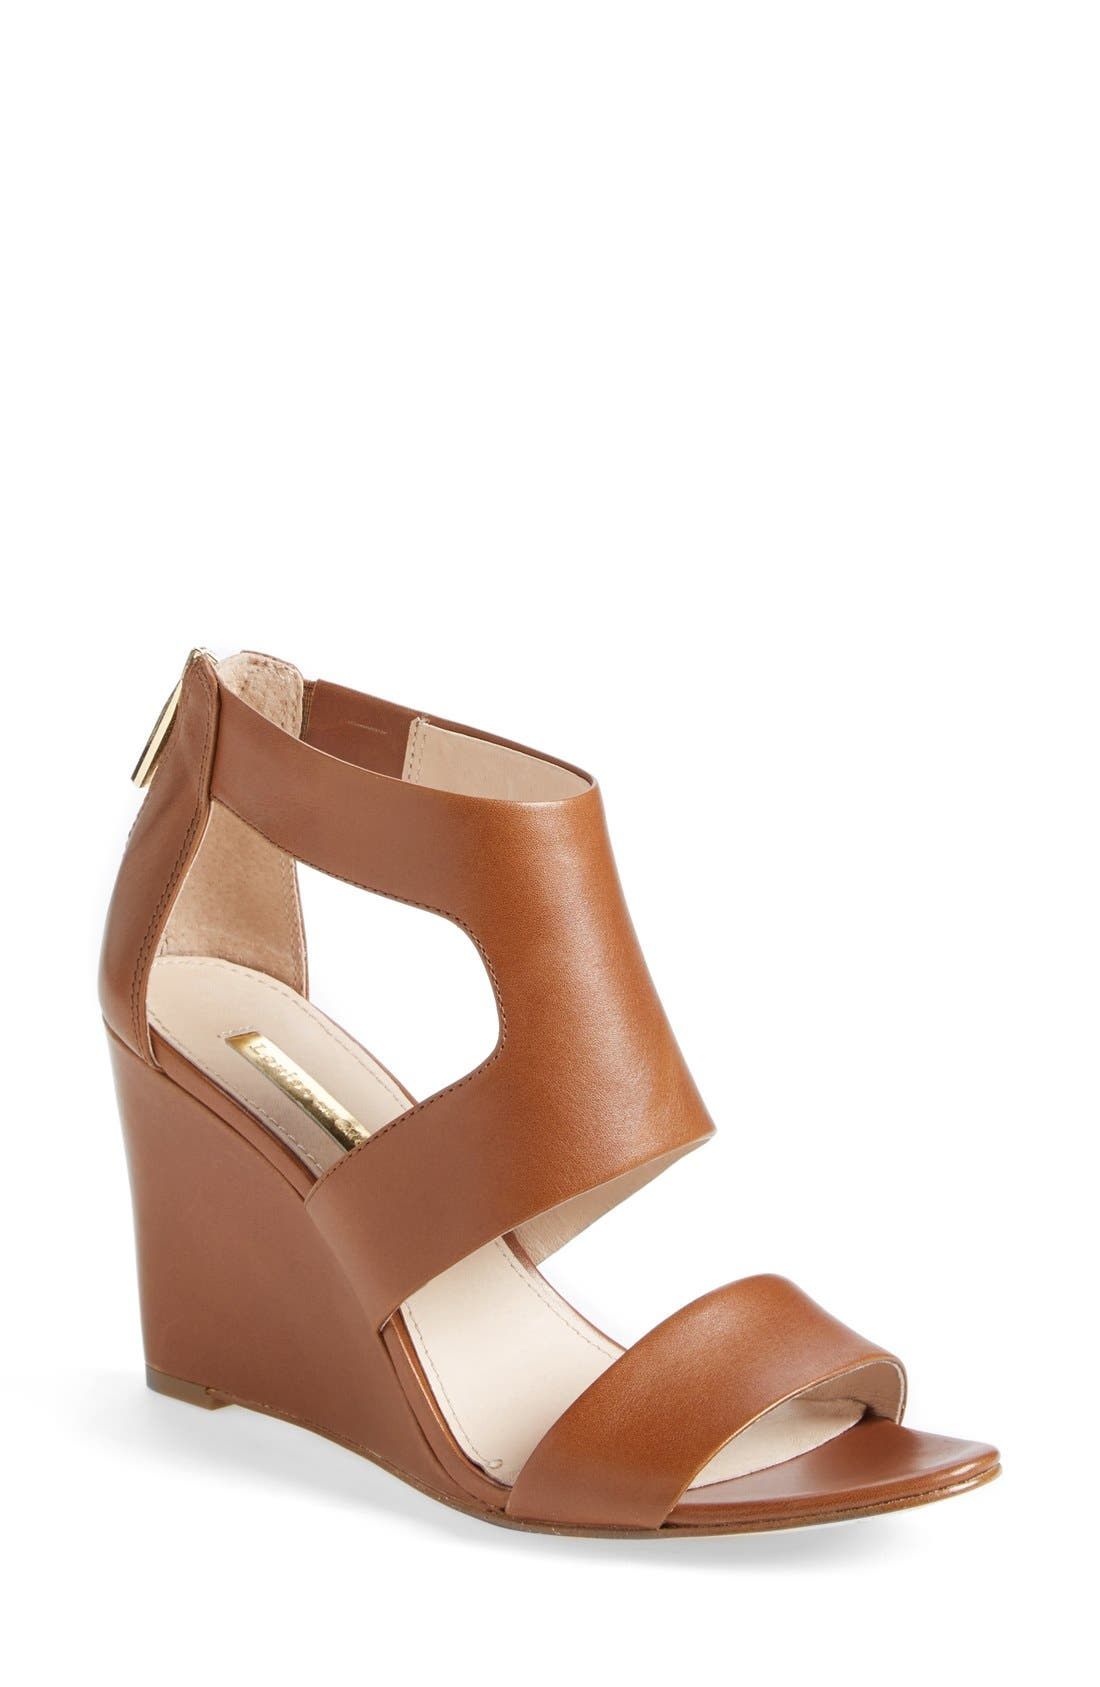 Alternate Image 1 Selected - Louise et Cie 'Rozza' Leather Wedge Sandal (Women)